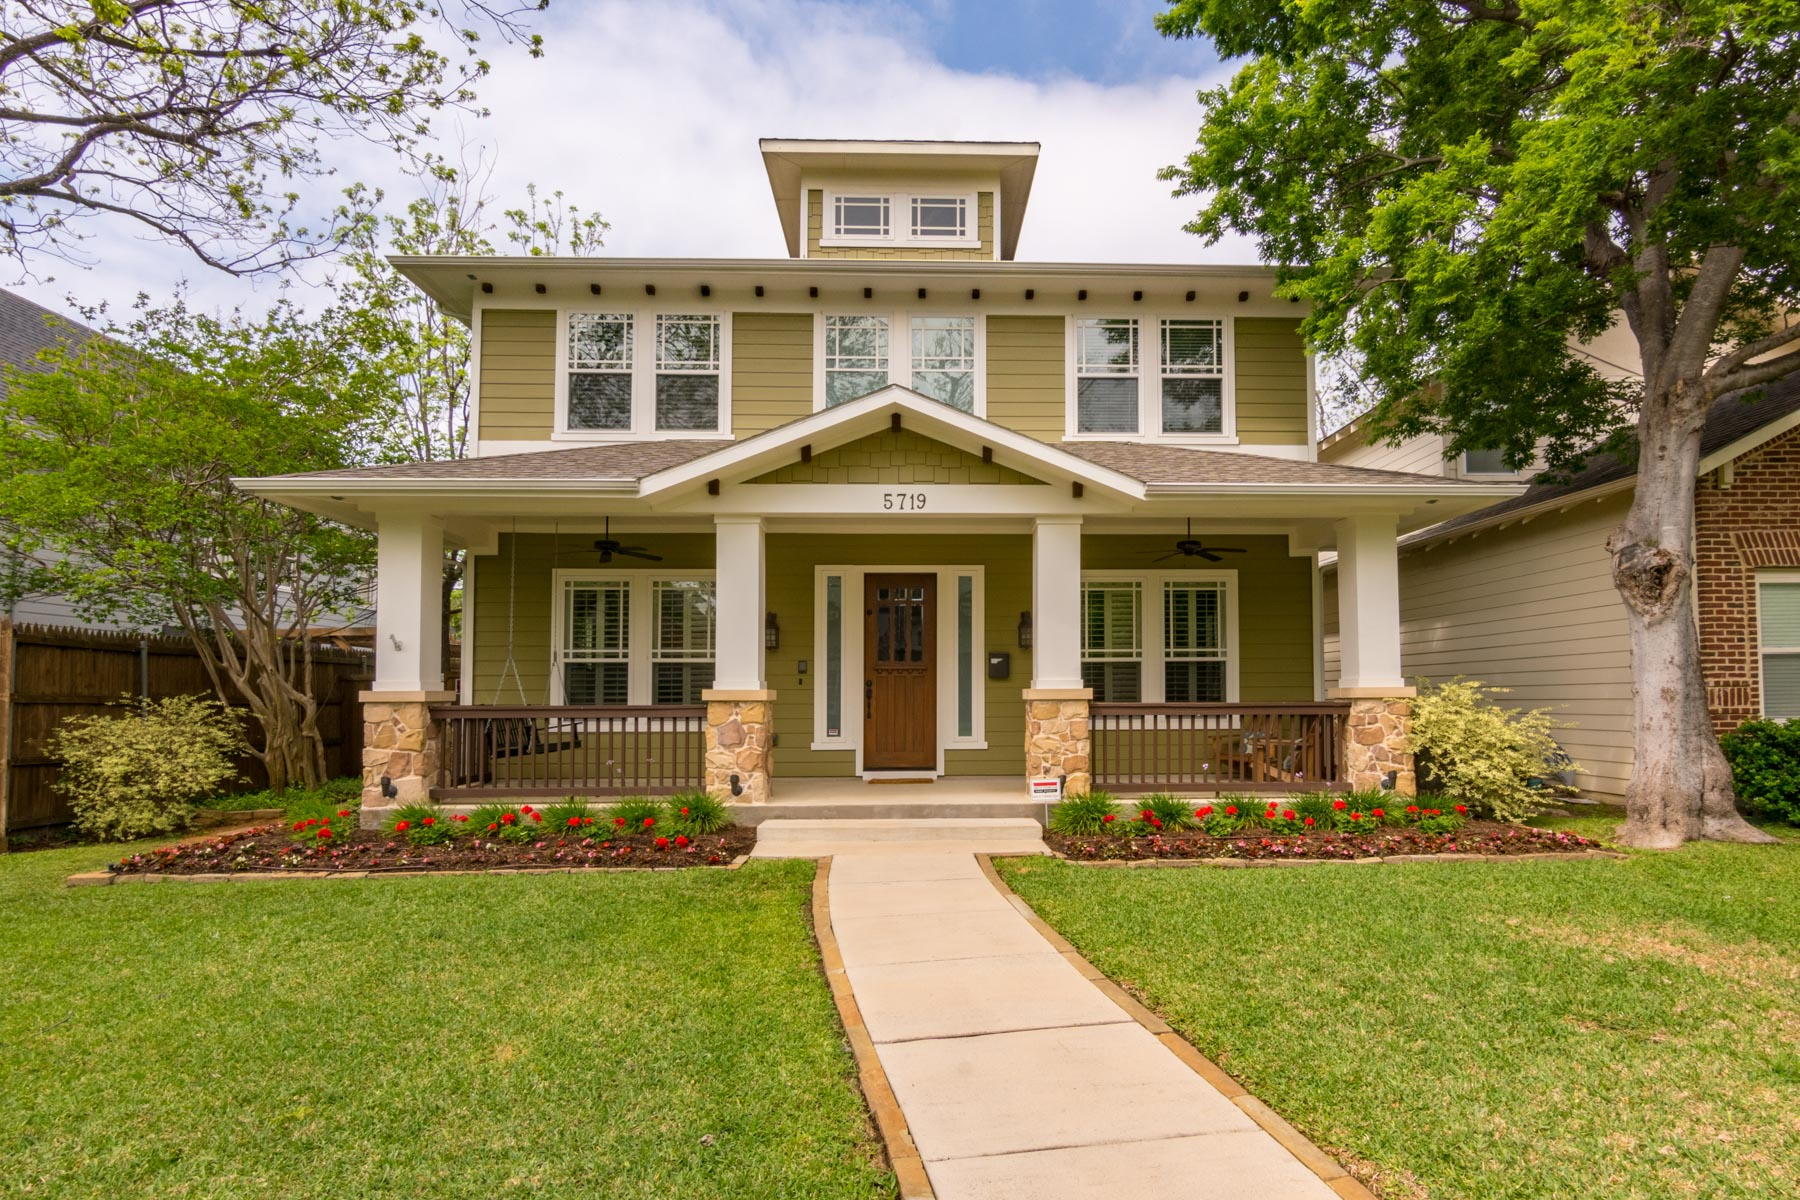 Vivienda unifamiliar por un Venta en Beautiful Craftsman Style Home 5719 Llano Ave Dallas, Texas, 75206 Estados Unidos